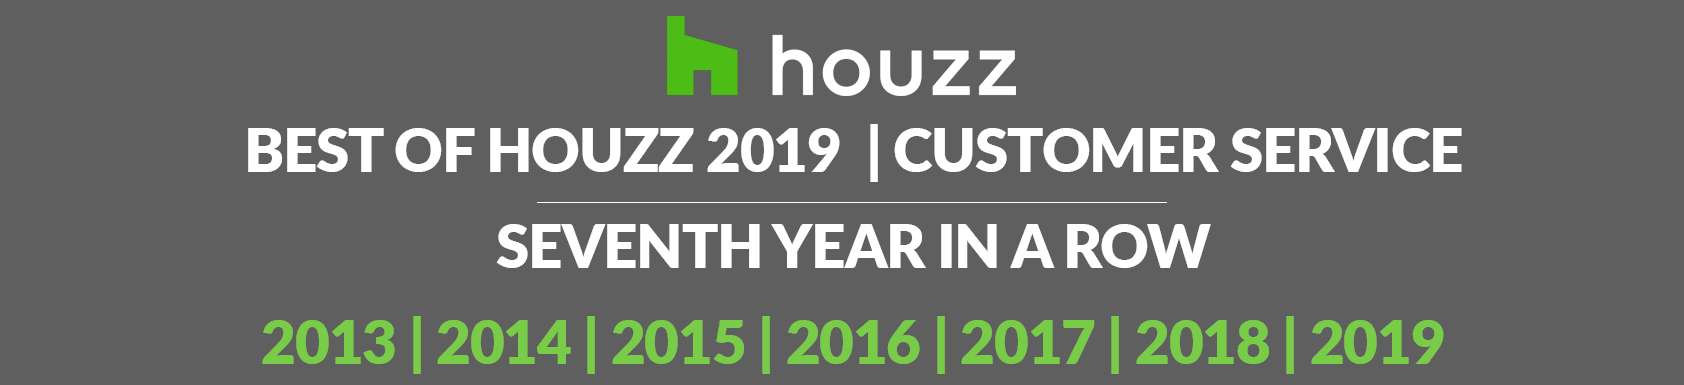 houzz-customer-service (1)